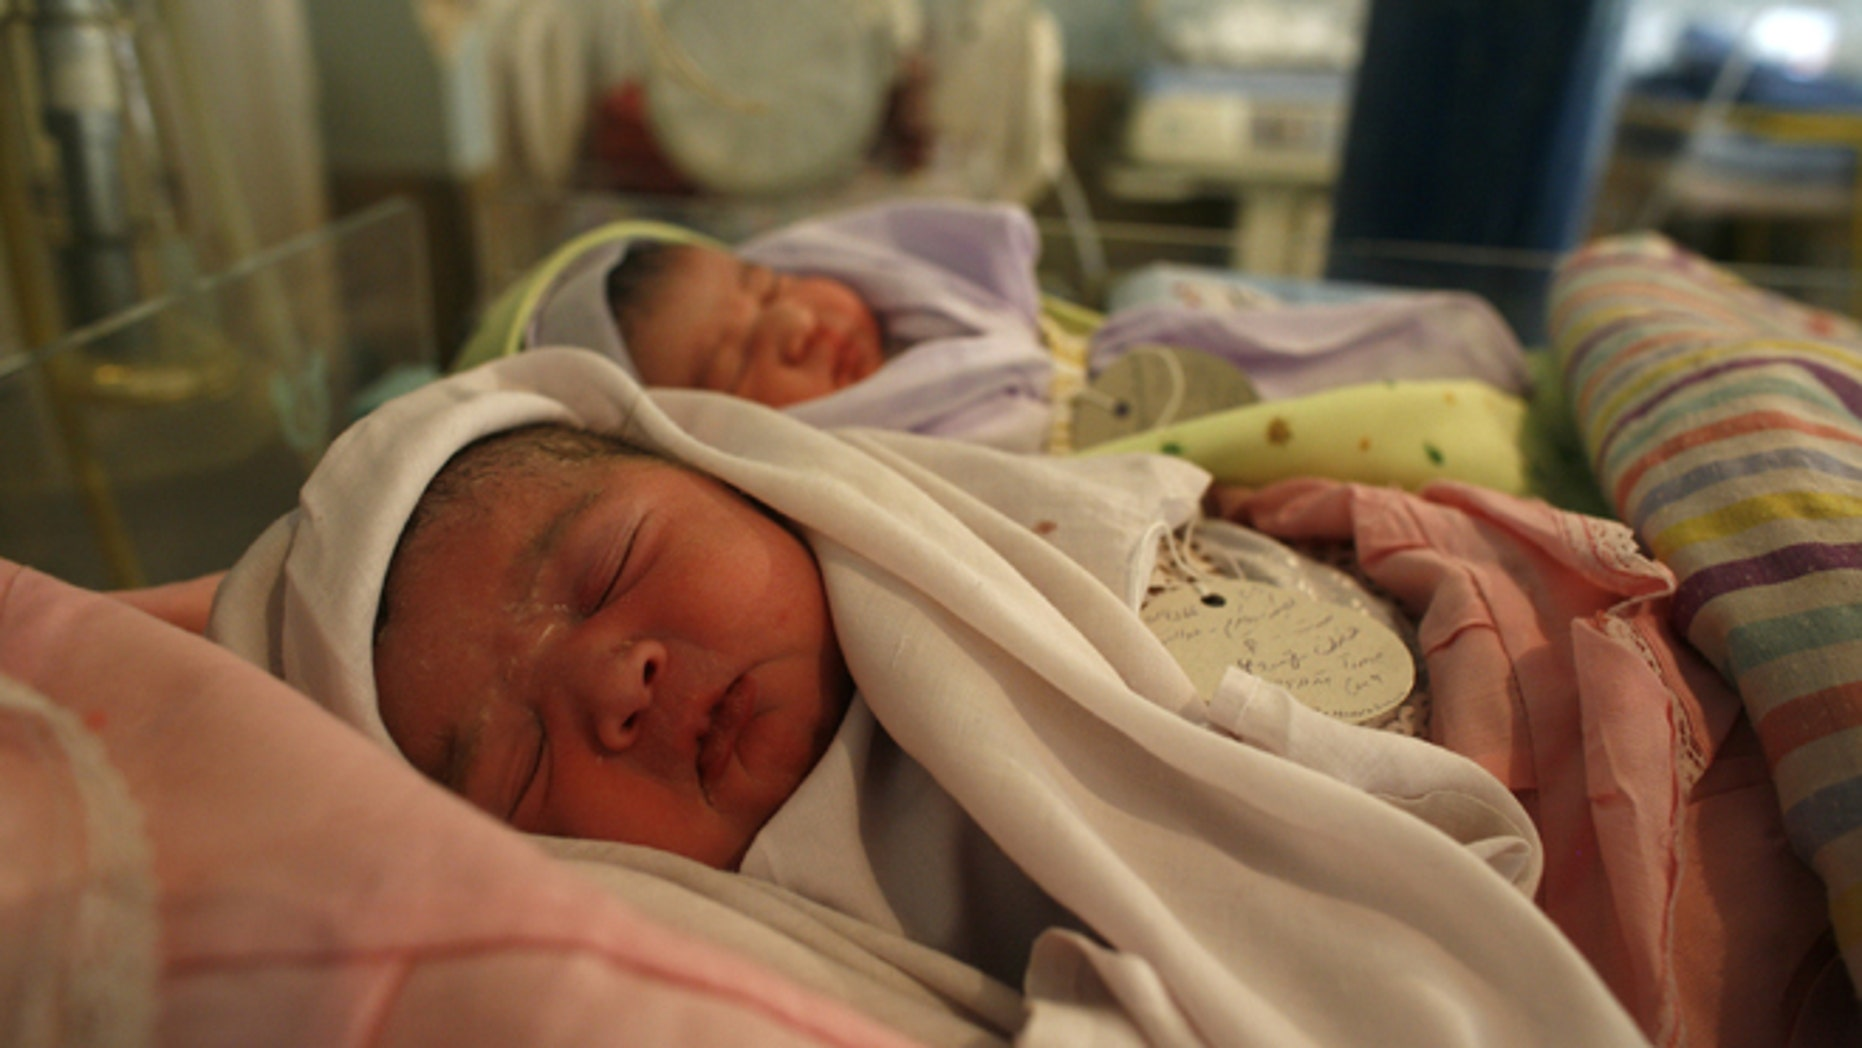 KABUL, AFGHANISTAN - OCTOBER 14:  Newborn babies rest inside the Neonatal ward at the Malalai Maternity hospital on October 14, 2007 in Kabul, Afghanistan. According to a UNICEF survey, one in nine Afghan women die during or shortly after pregnancy in Afghanistan, one of the highest rates in the world. At the hospital there are approximately 60 to 100 babies born each day, with many women making long journeys to receive the free medical care. UNICEF states that many pregnant women are deprived of basic health care and only 11 percent of deliveries take place in a healthcare facility. In many cases the conservative Afghan culture places the health of many women at risk. Forty percent of the women in Afghanistan are married before the age of 18 with one third having children before reaching adulthood. (Photo Paula Bronstein/Getty Images)